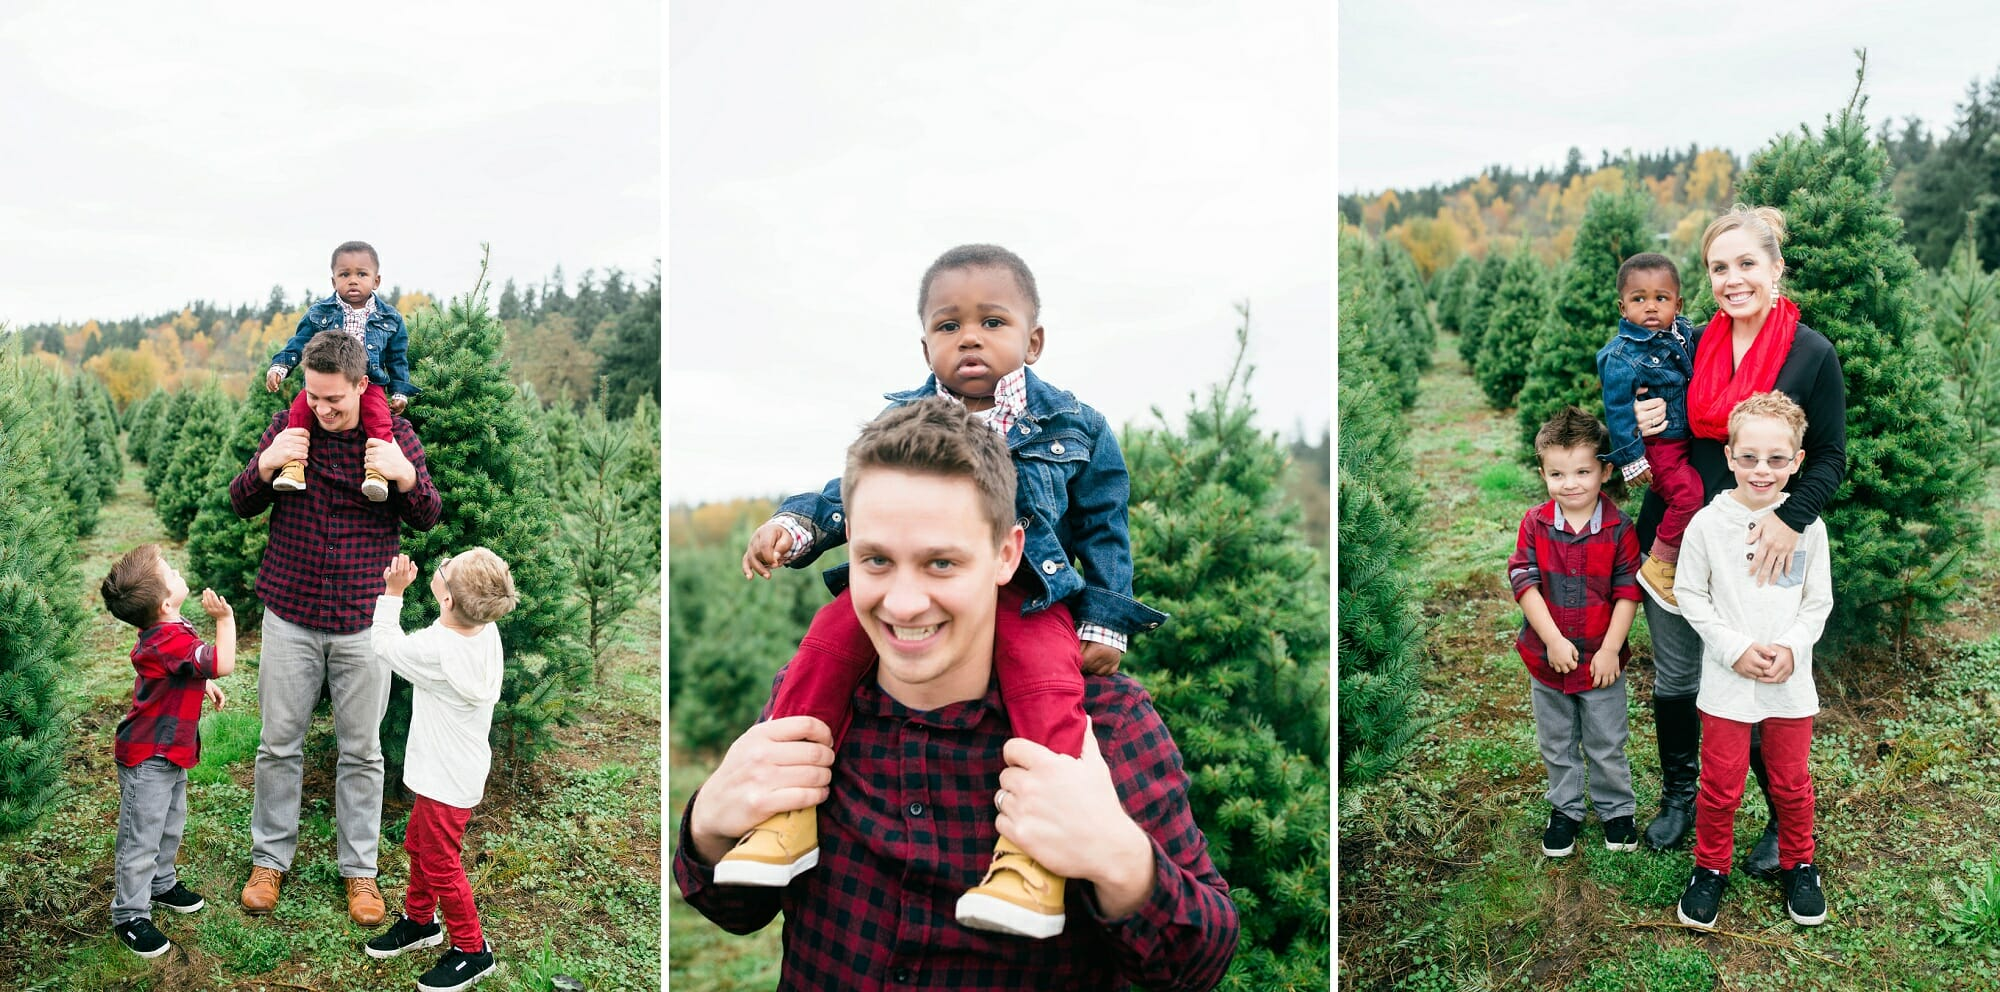 McMurtrey's Red-Wood Christmas Tree Farm